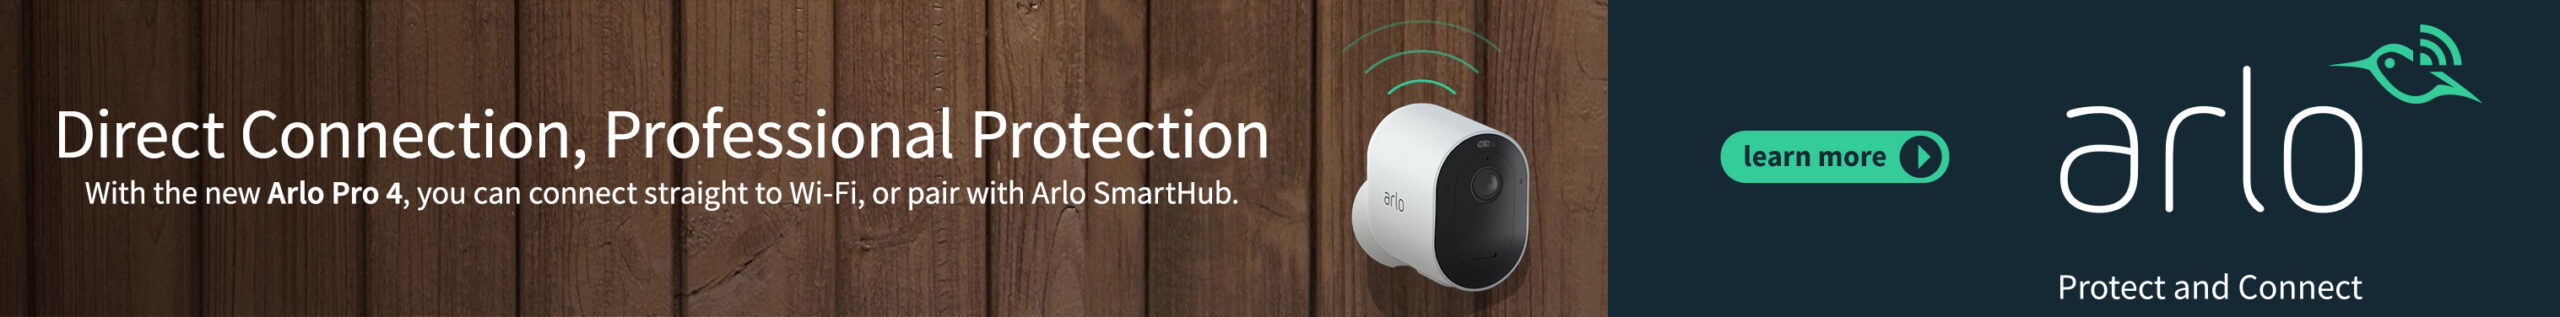 ARL0335 Arlo Pro 4 Banner 728x90 FA scaled Samsung Expands SmartThings Lineup